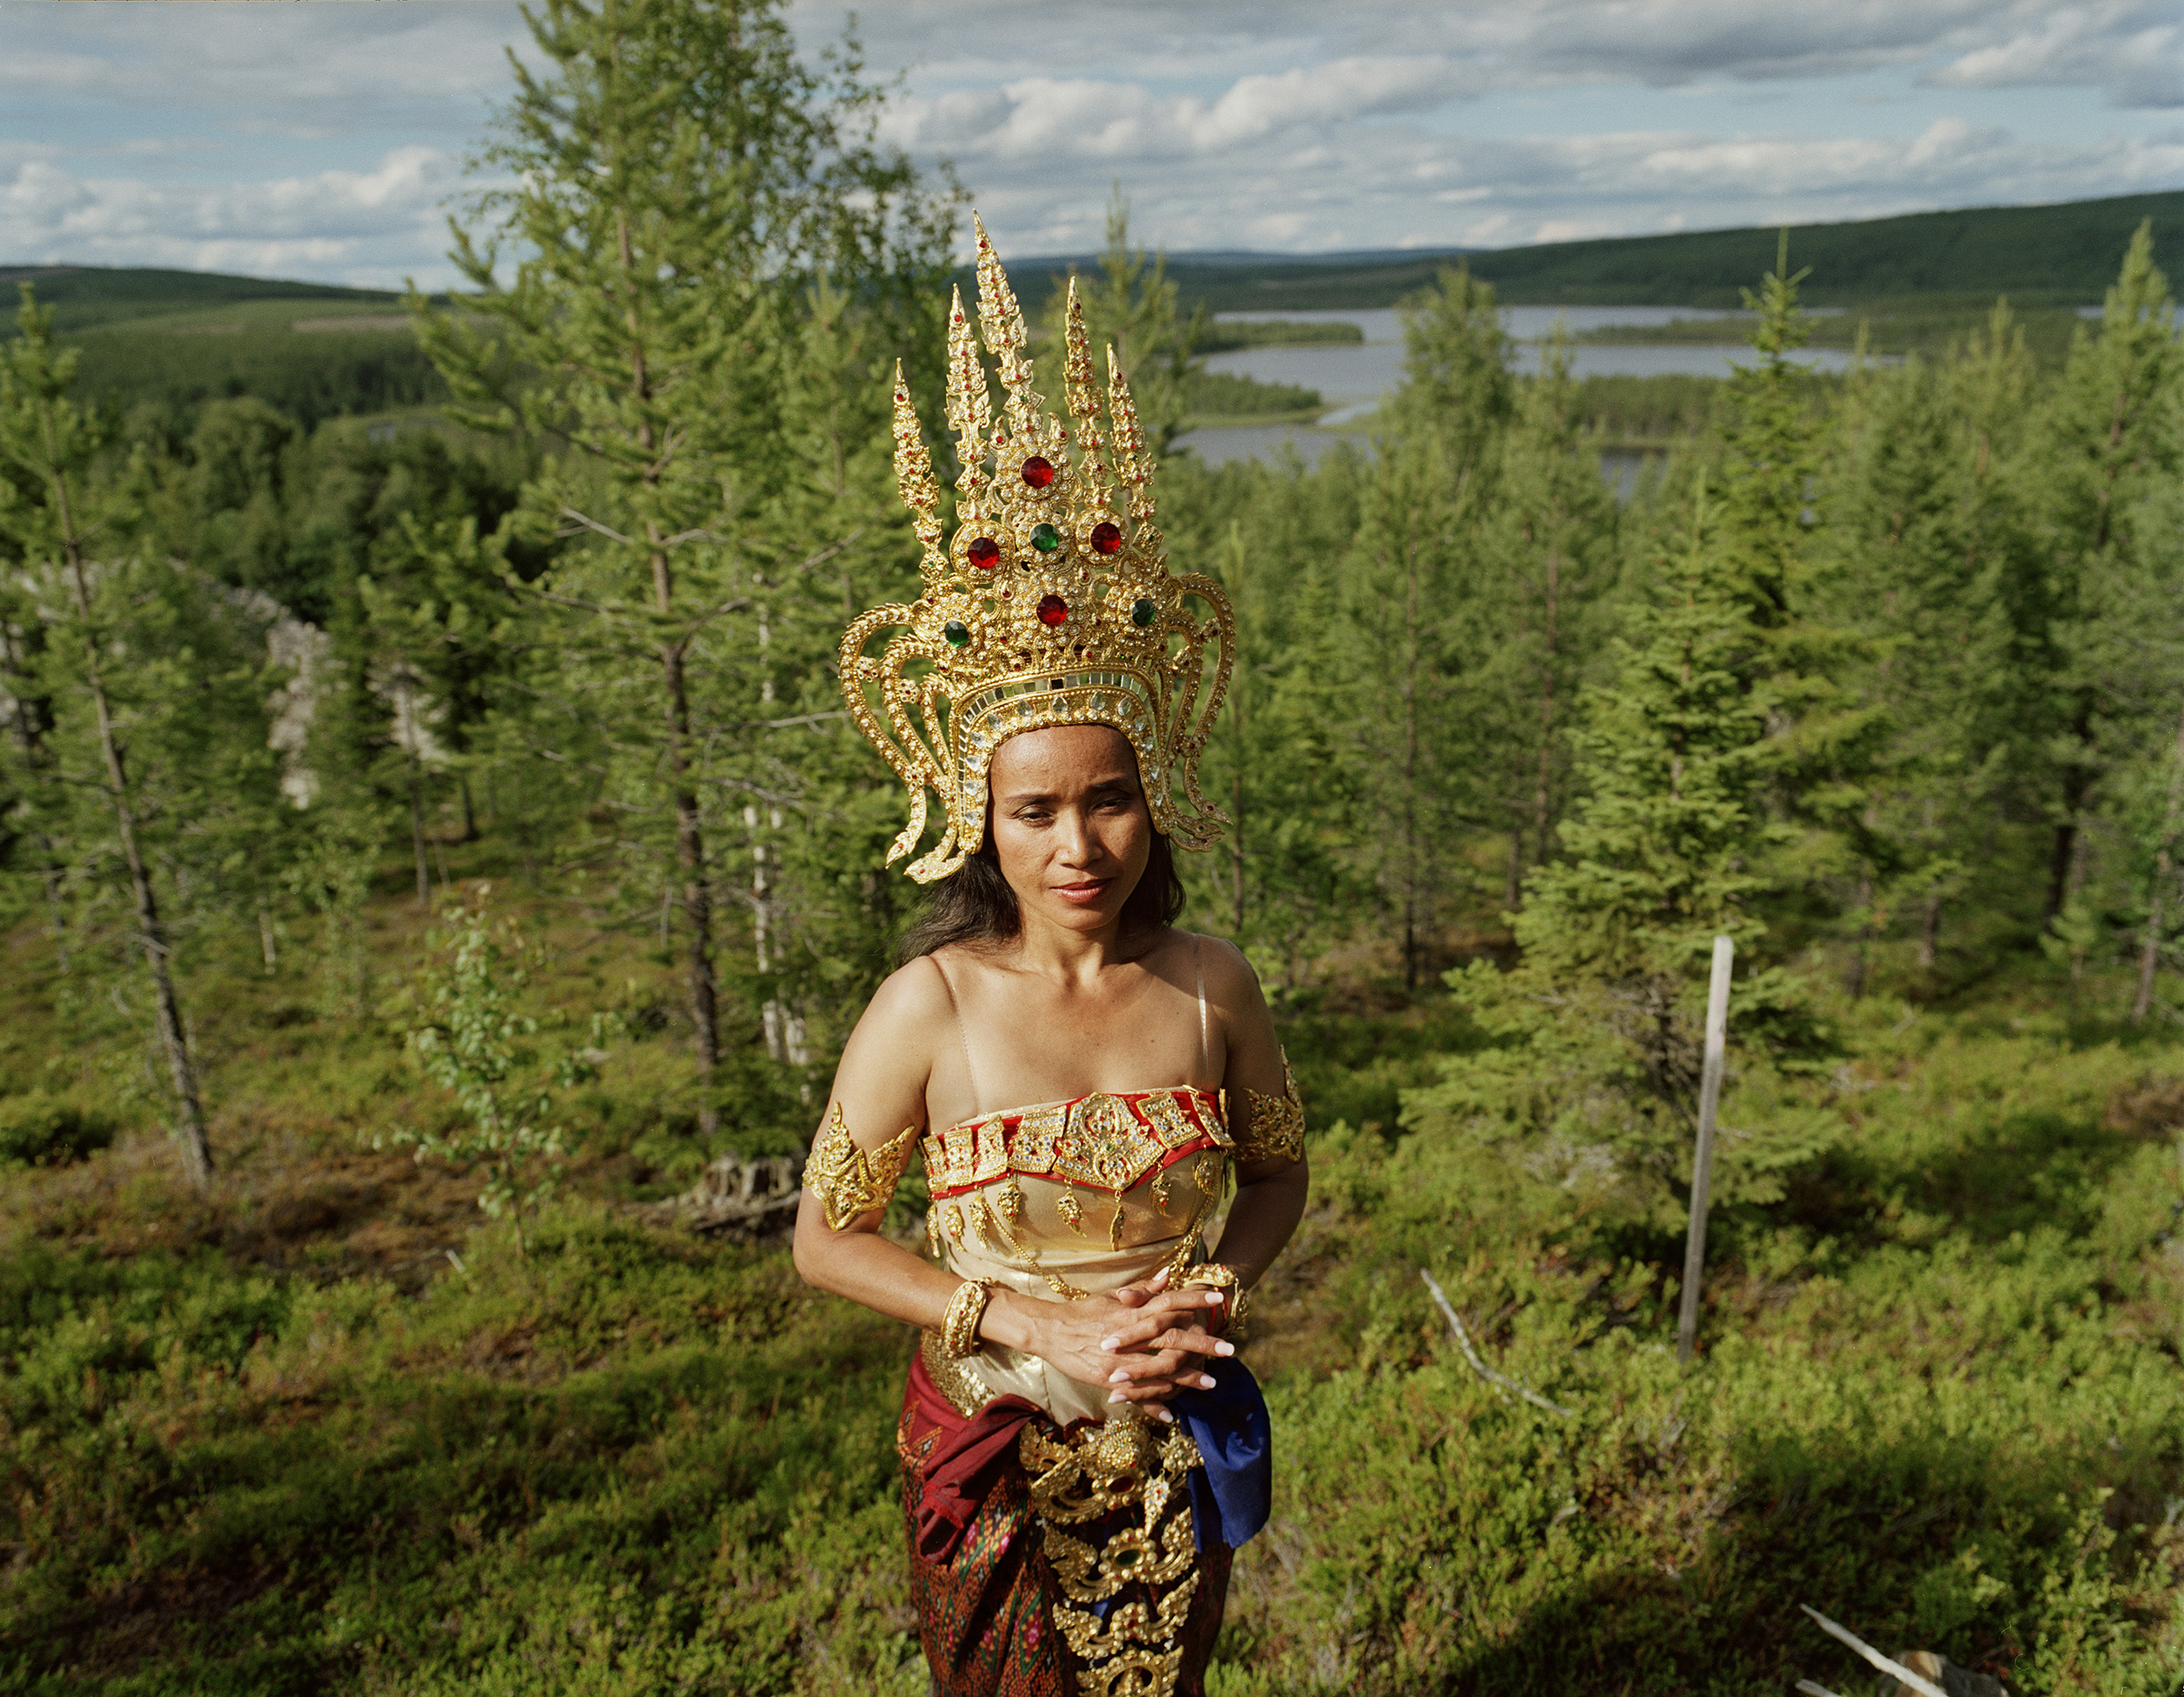 Thitaree, Fredrika, 2008. She lives in Kiruna but has come to the temple mount in Fredrika to perfom traditional Thai dance at a Buddhist ceremony.